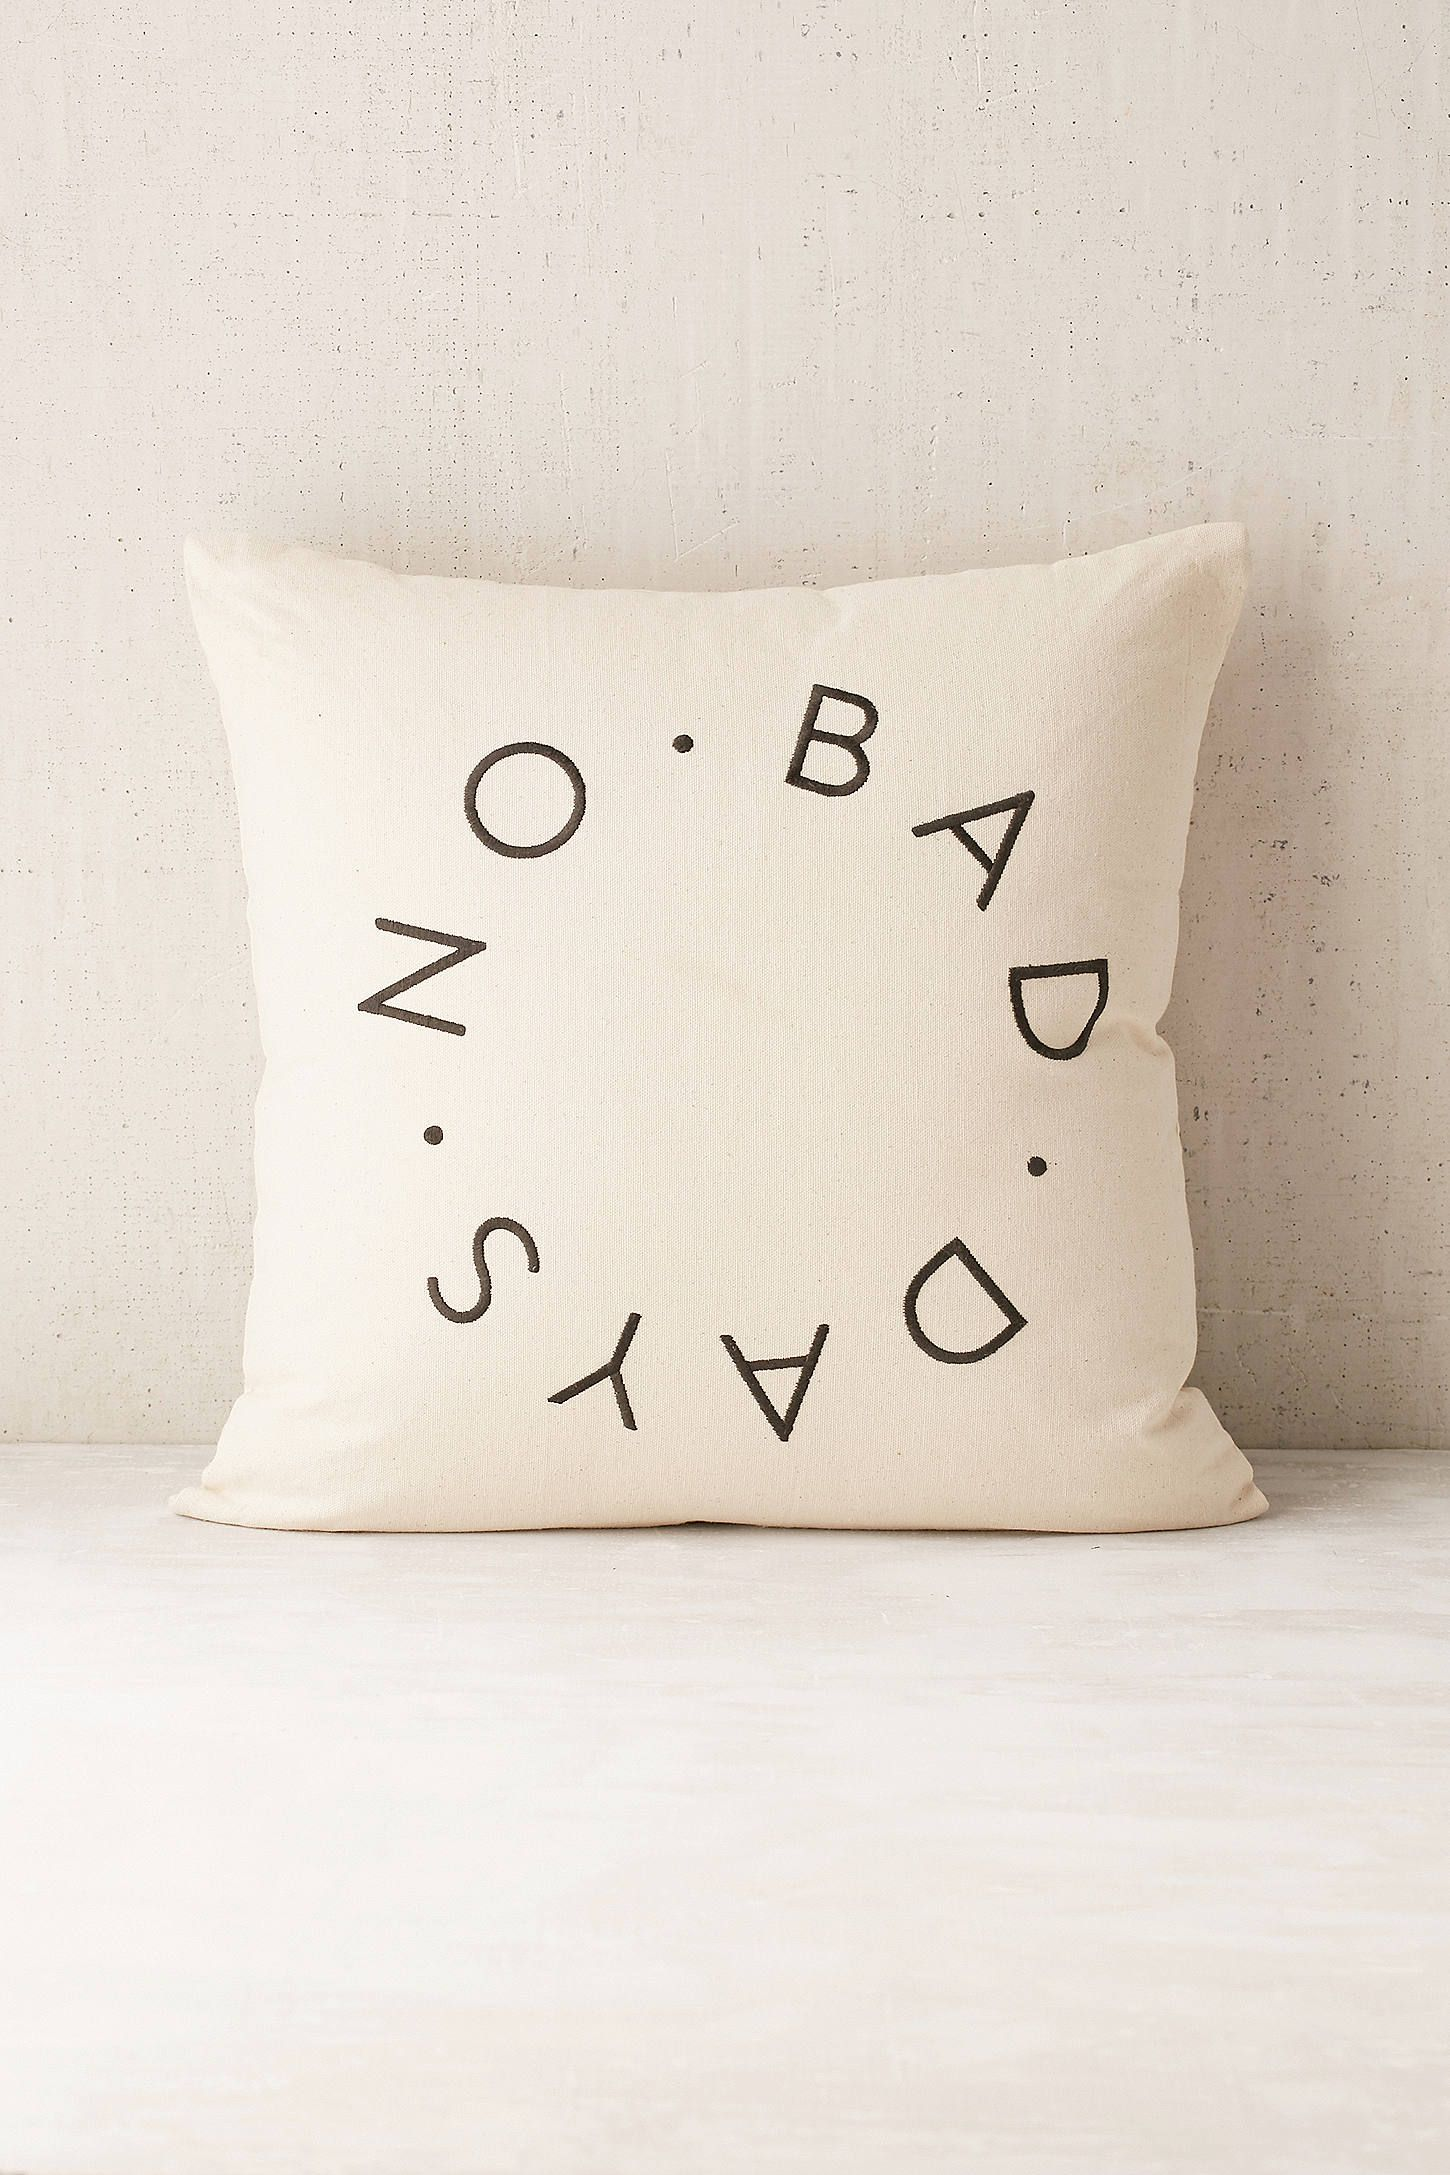 Shop No Bad Days Cushion at Urban Outfitters today We carry all the latest styles colours and brands for you to choose from right here